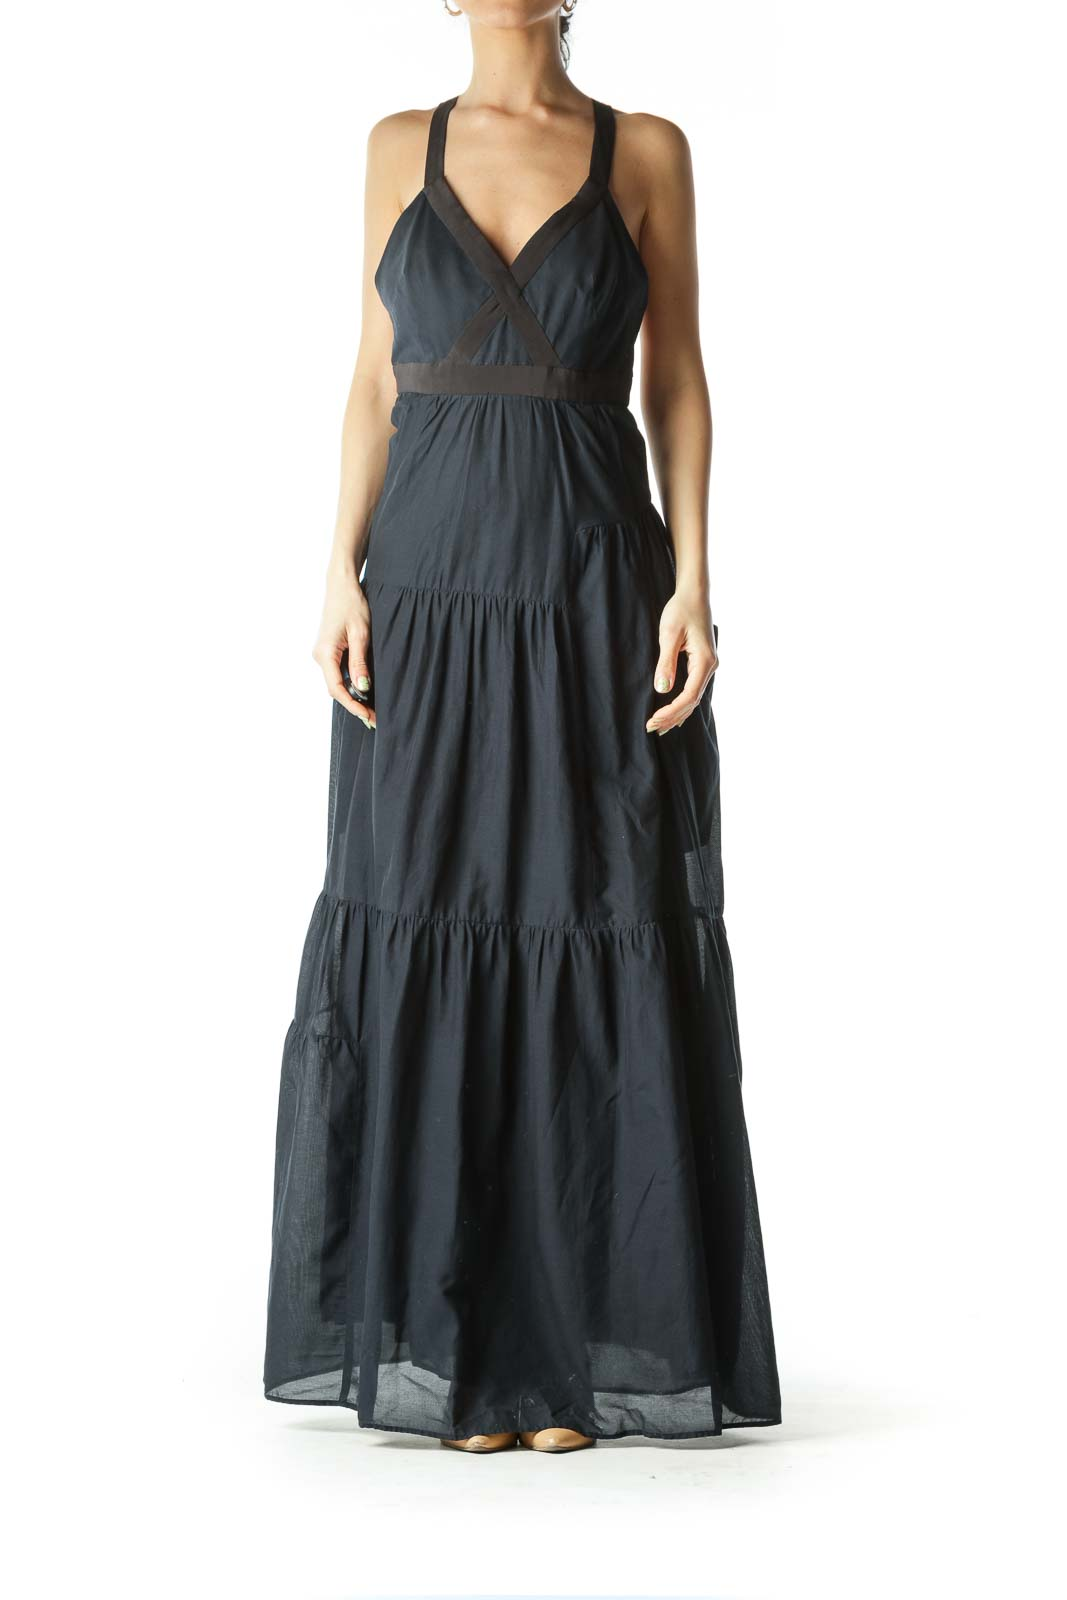 Black and Navy Blue Maxi Dress